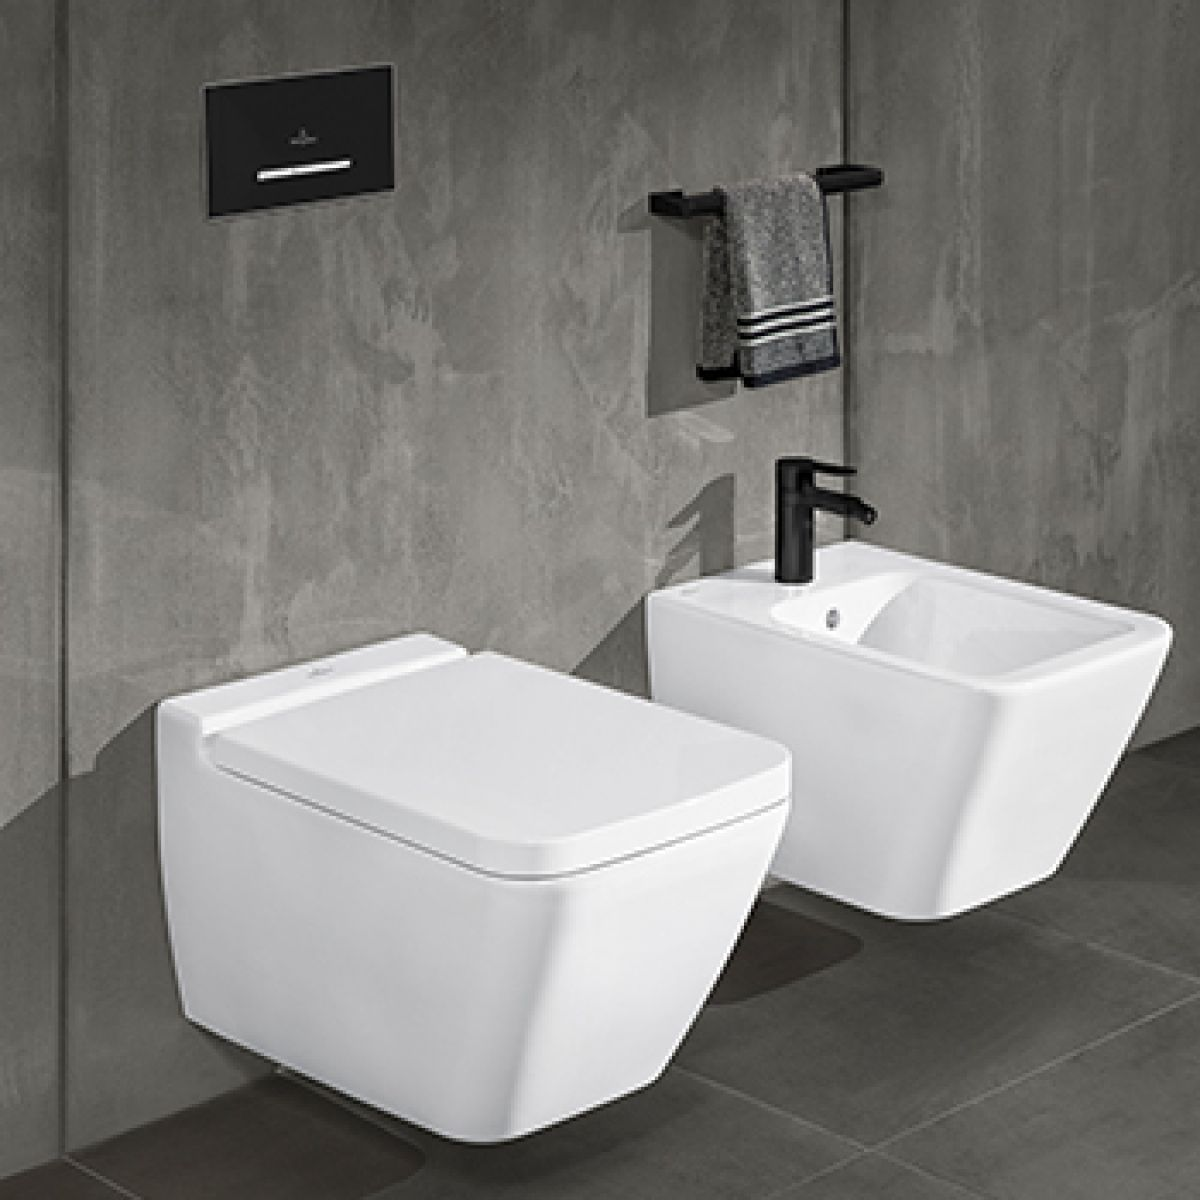 Villeroy & Boch Finion Wall Hung Rimless Toilet